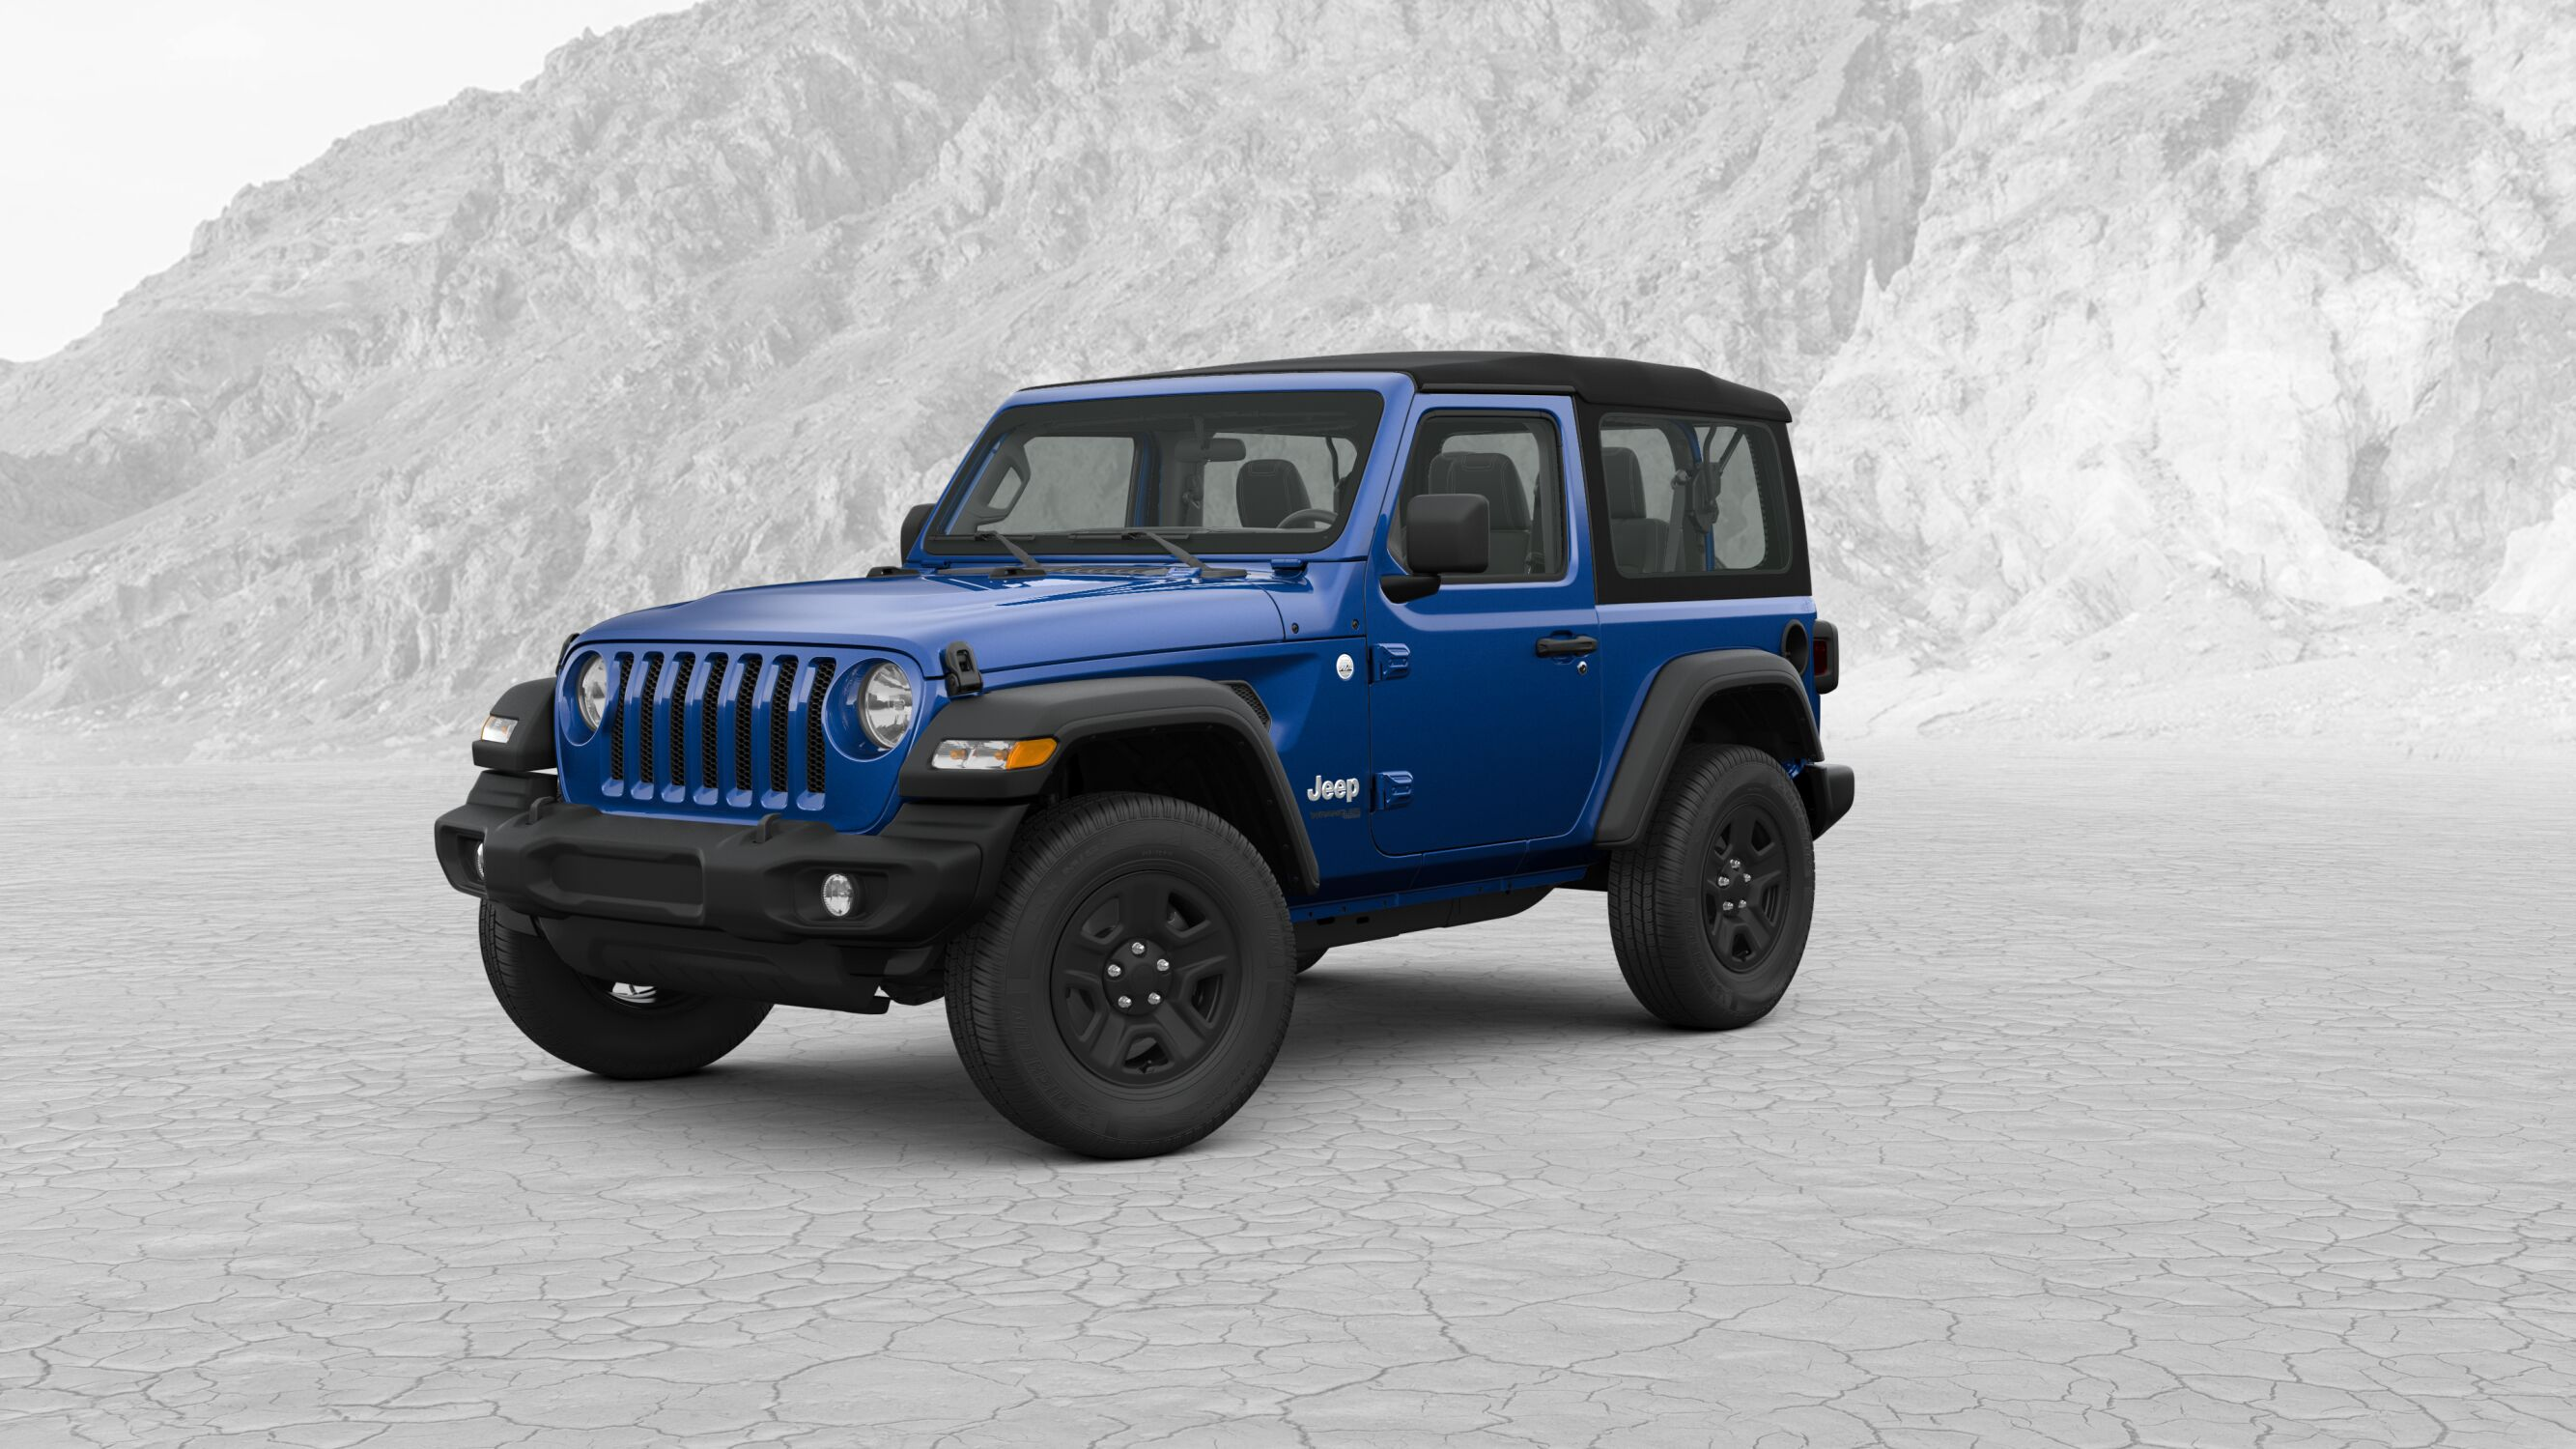 2018 Jeep Wrangler Sport Rocky Top Chrysler Dodge Kodak Tn Exploded View Blue Exterior Front Picture